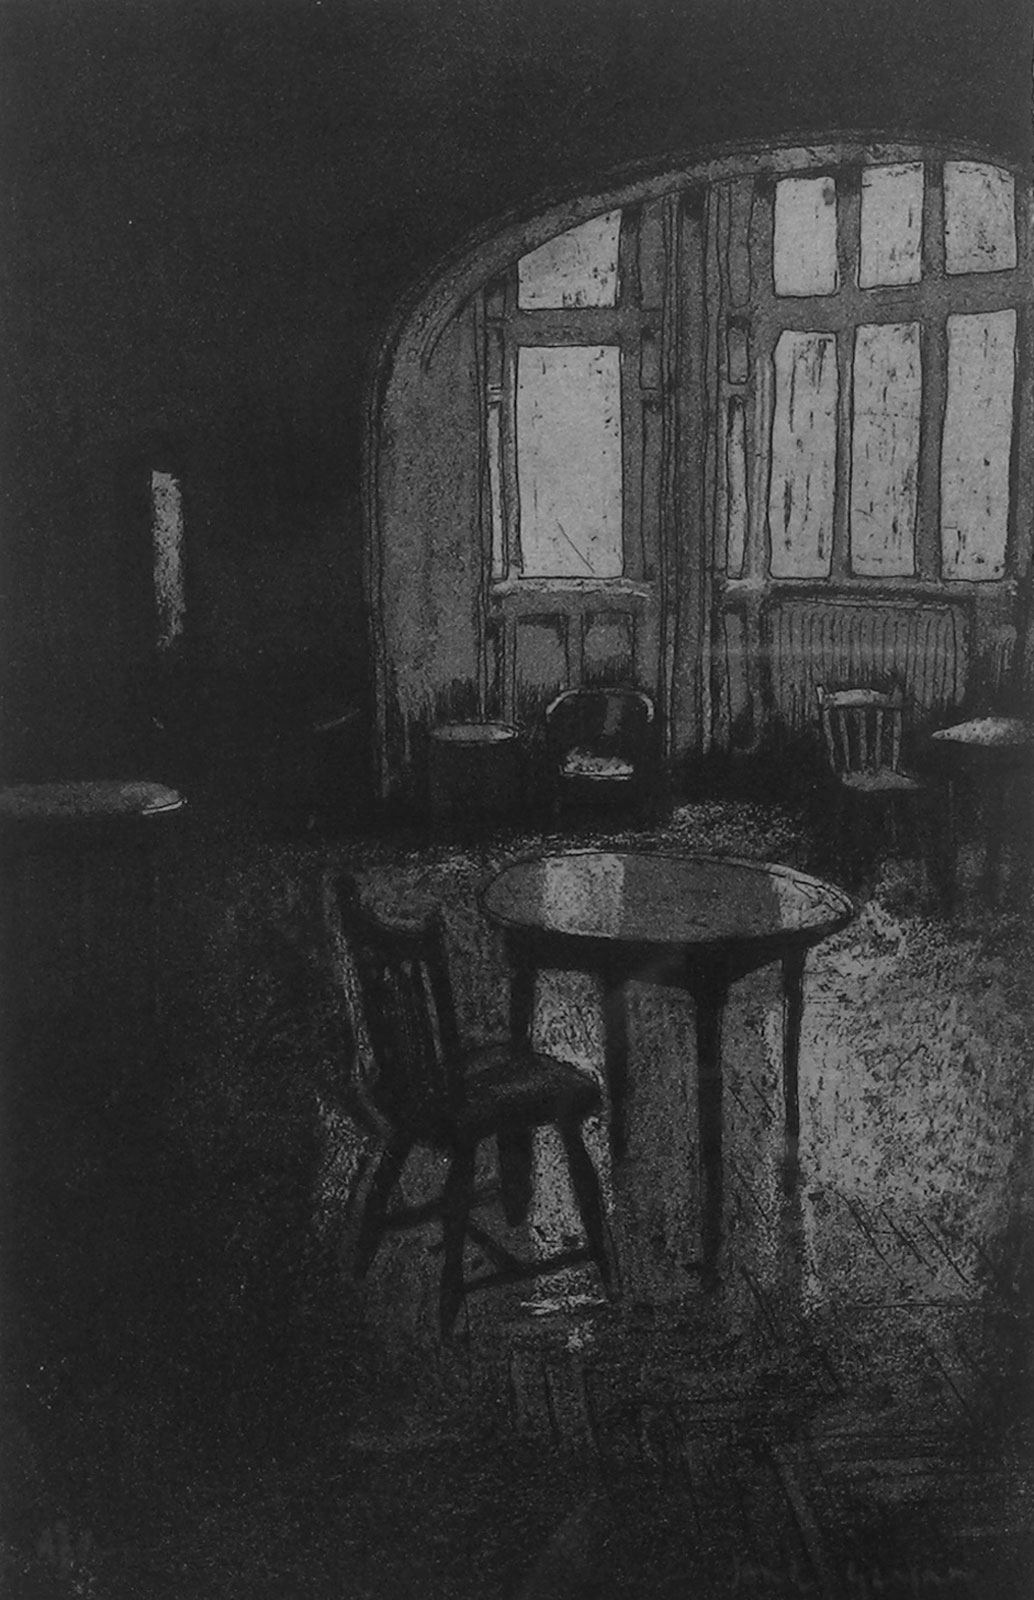 Jane Glynn, Meeting Room